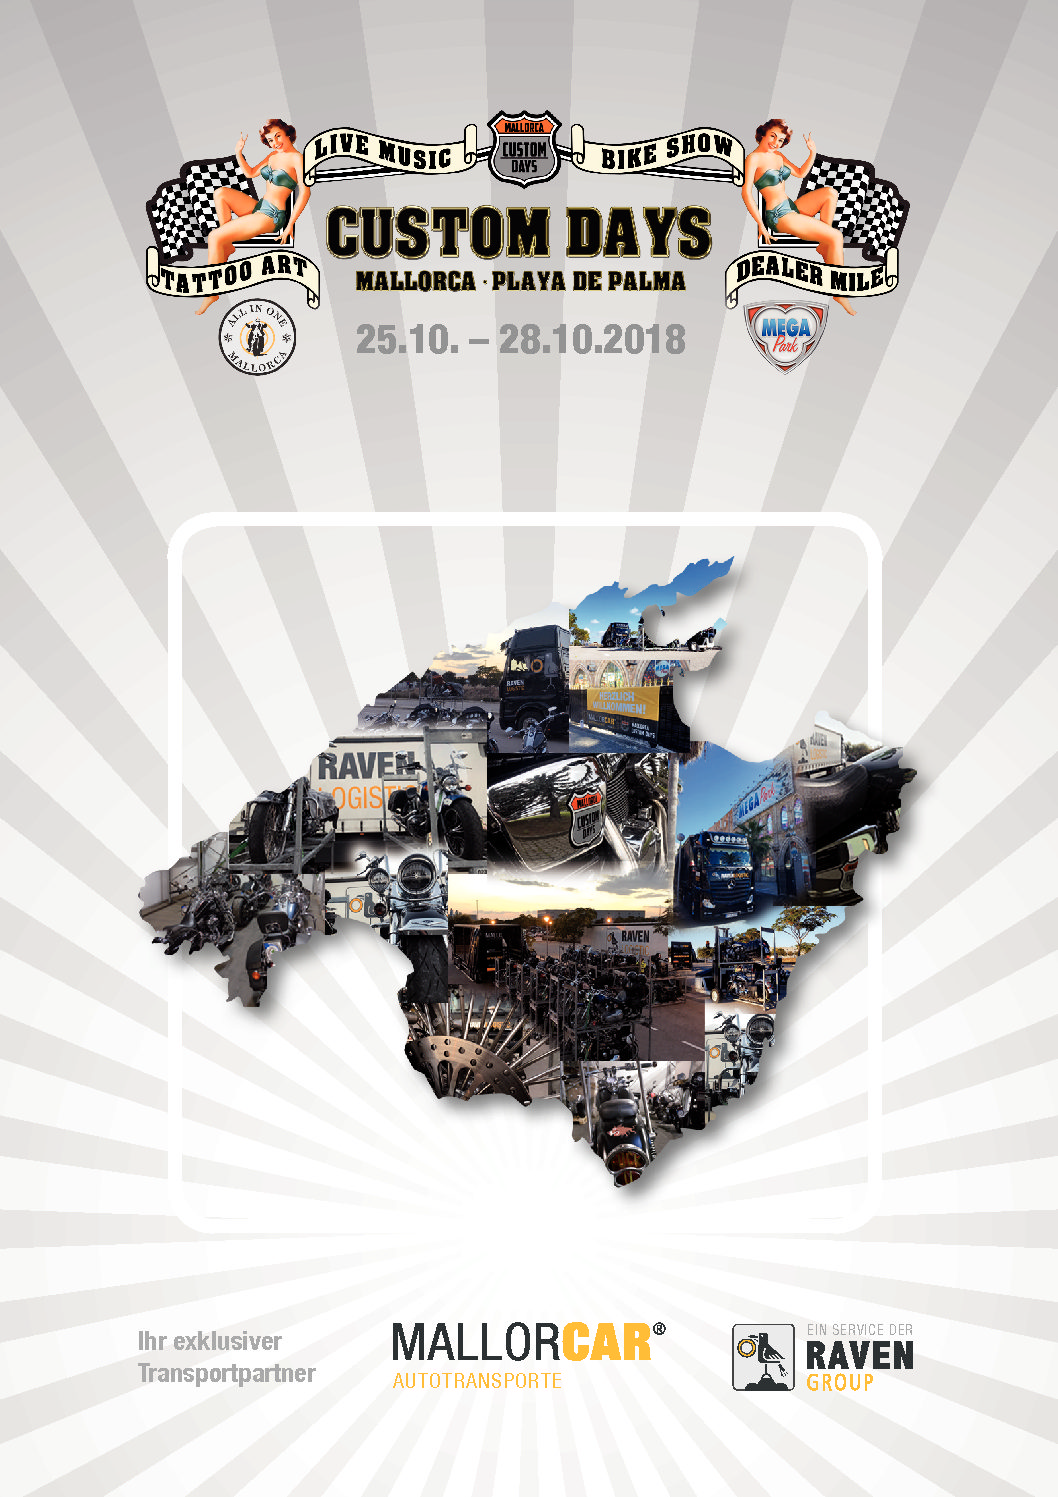 CUSTOM DAYS MALLORCA 2018 - MALLORCAR® - Transport